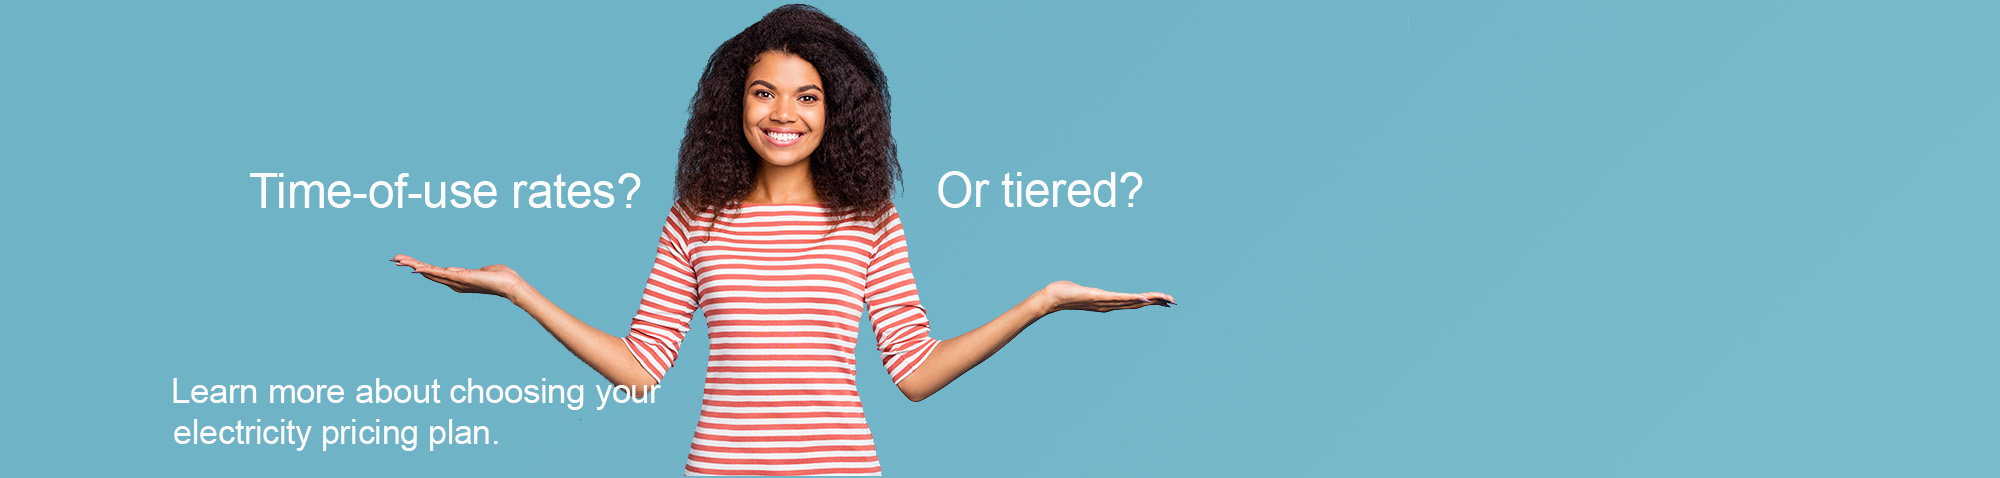 "Woman wearing a striped shirt holds both hands up to indicate choice. Text says ""Time-of-use? Or Tiered? Learn more about choosing your electricity price plan."""